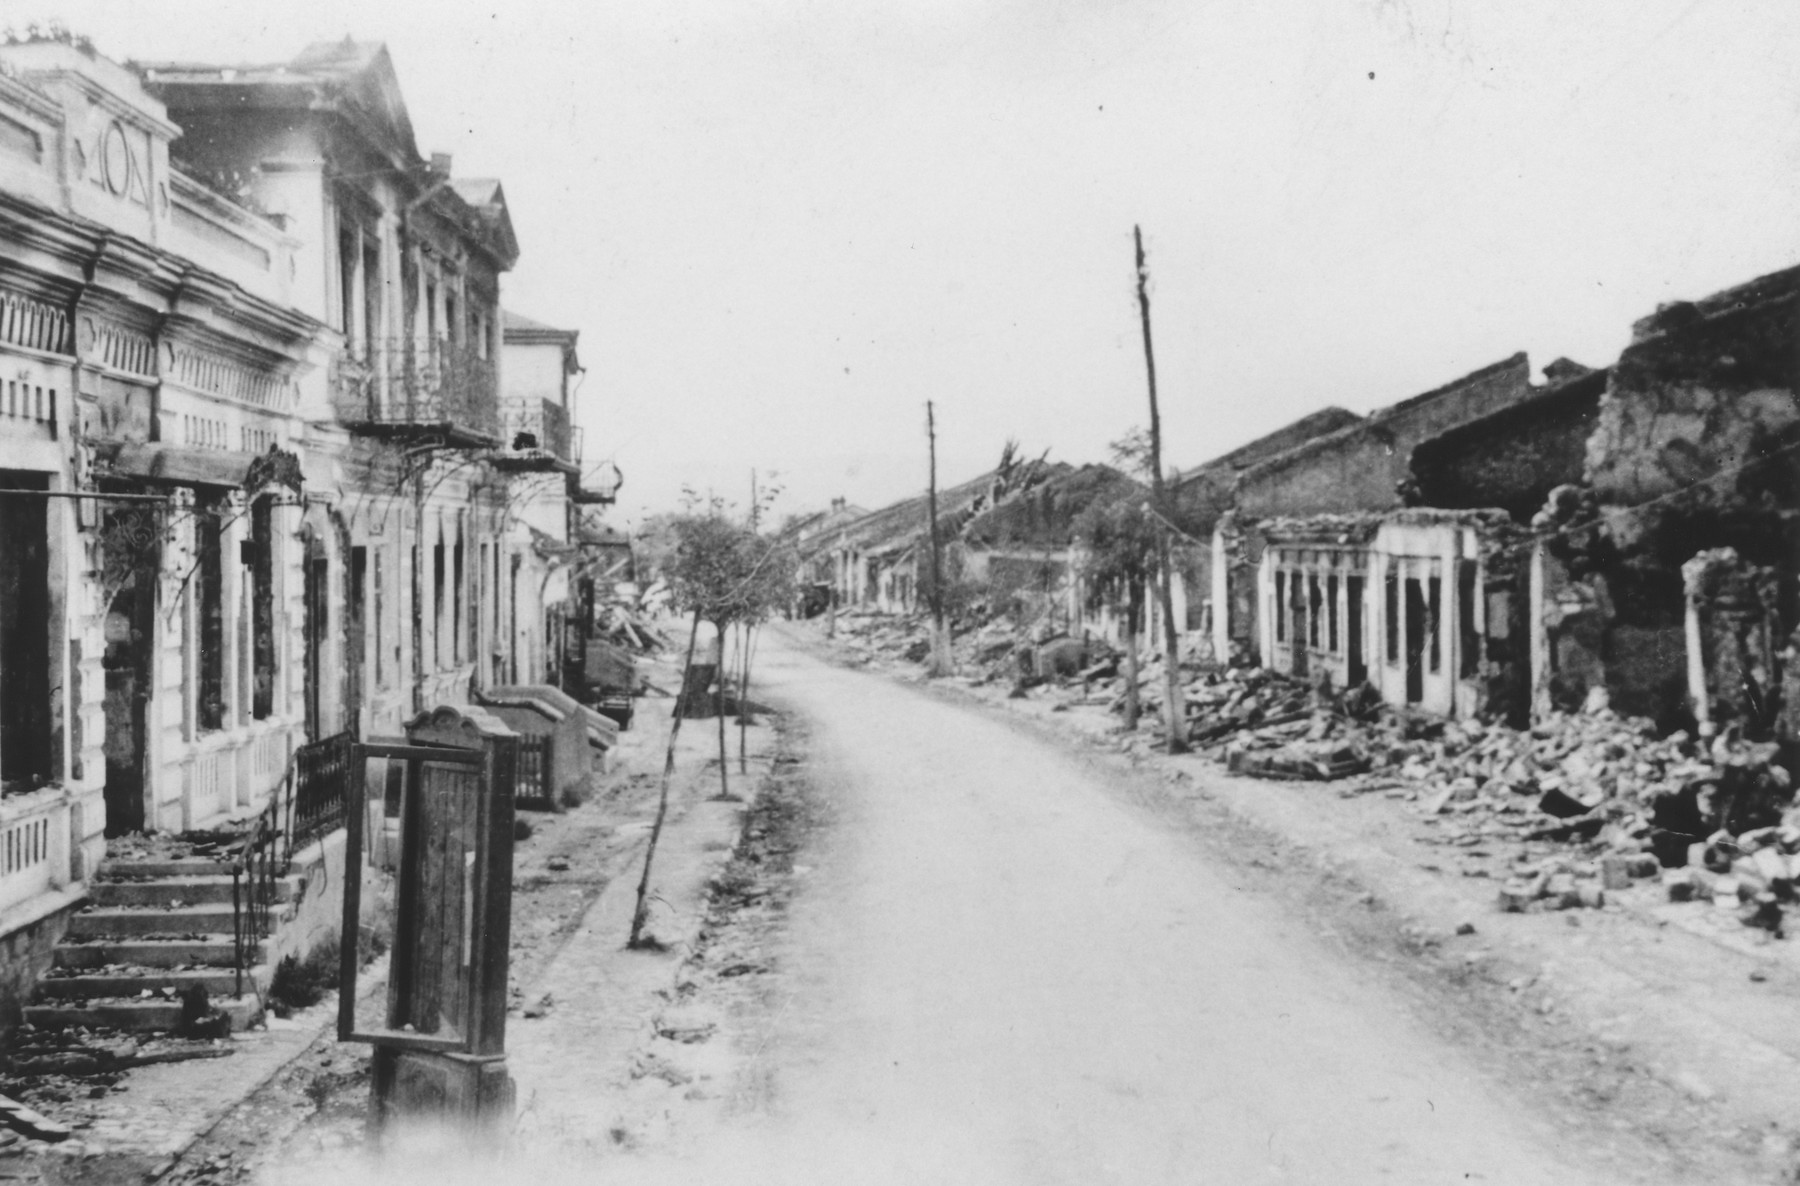 View of a bombed out street in German occupied eastern Europe.  The photograph was probably taken by a member of Police Battalion 101.   One image from a photograph album belonging to a member of Police Battalion 101.